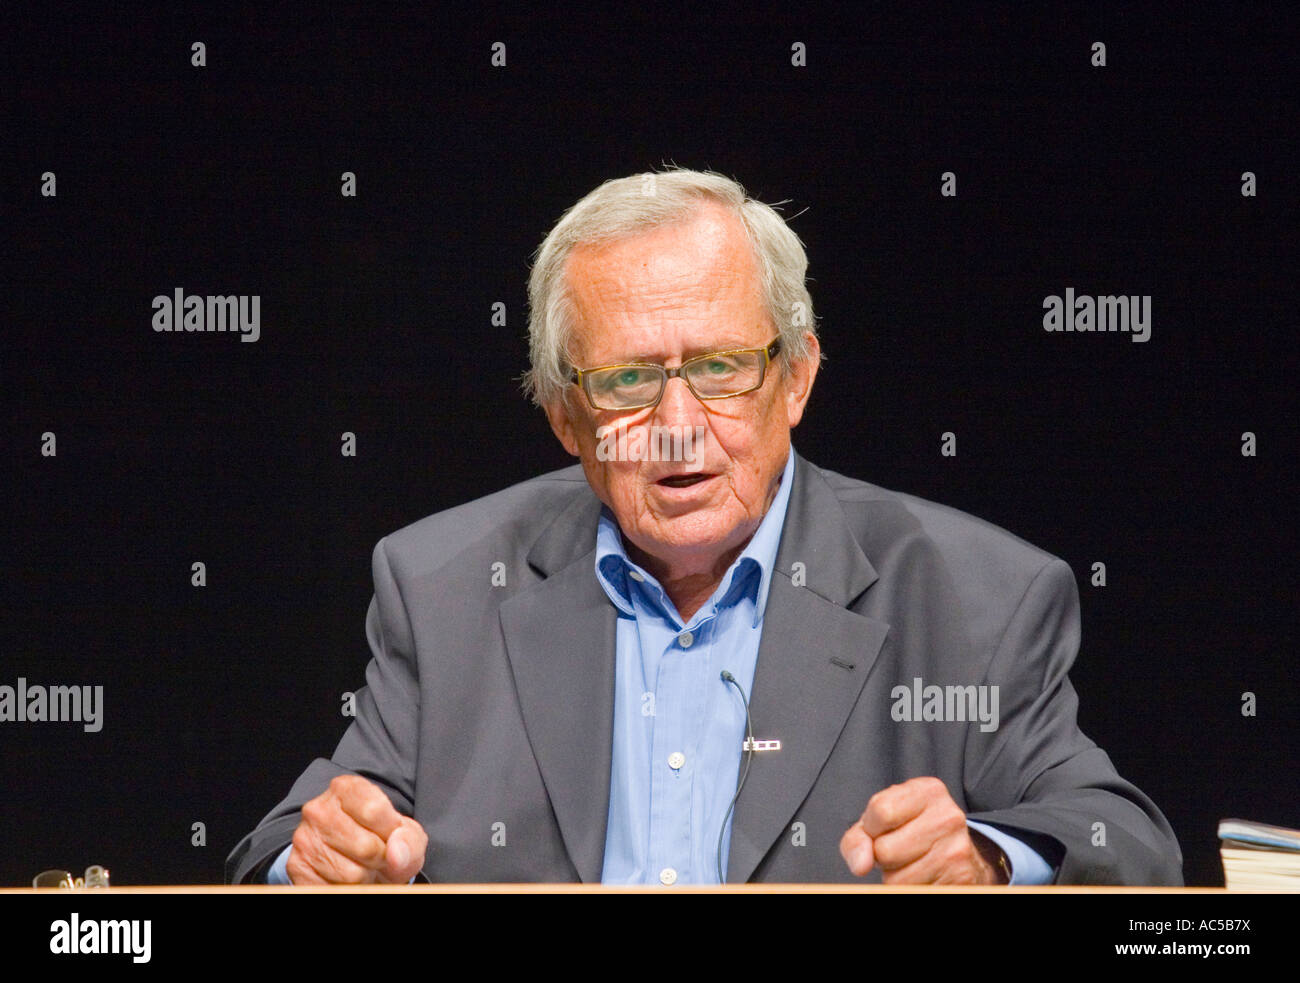 Renowned German cabaret artist Dieter Hildebrandt, who just turned 80 years, performing his latest presentation - Stock Image